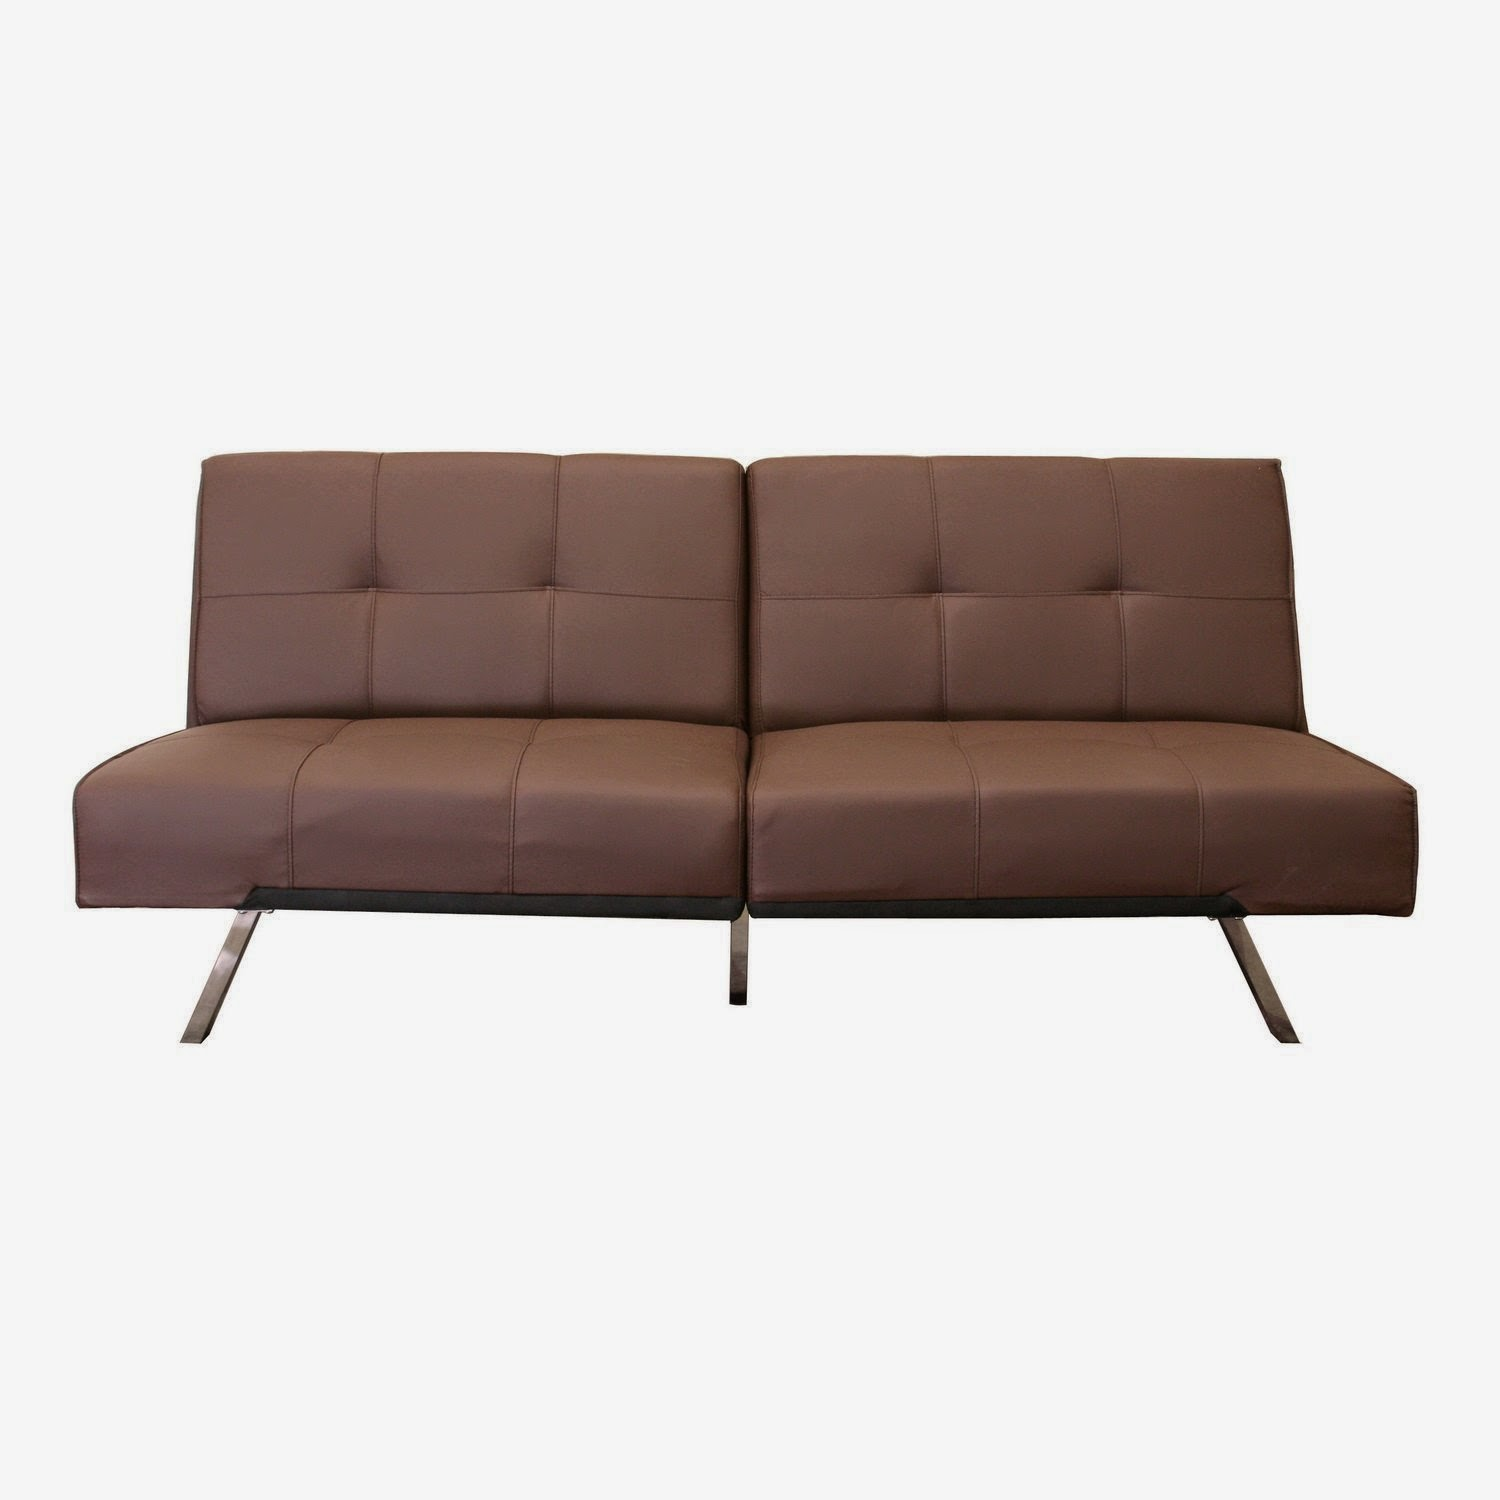 Convertible Sofa Leather Convertible Sofa Bed